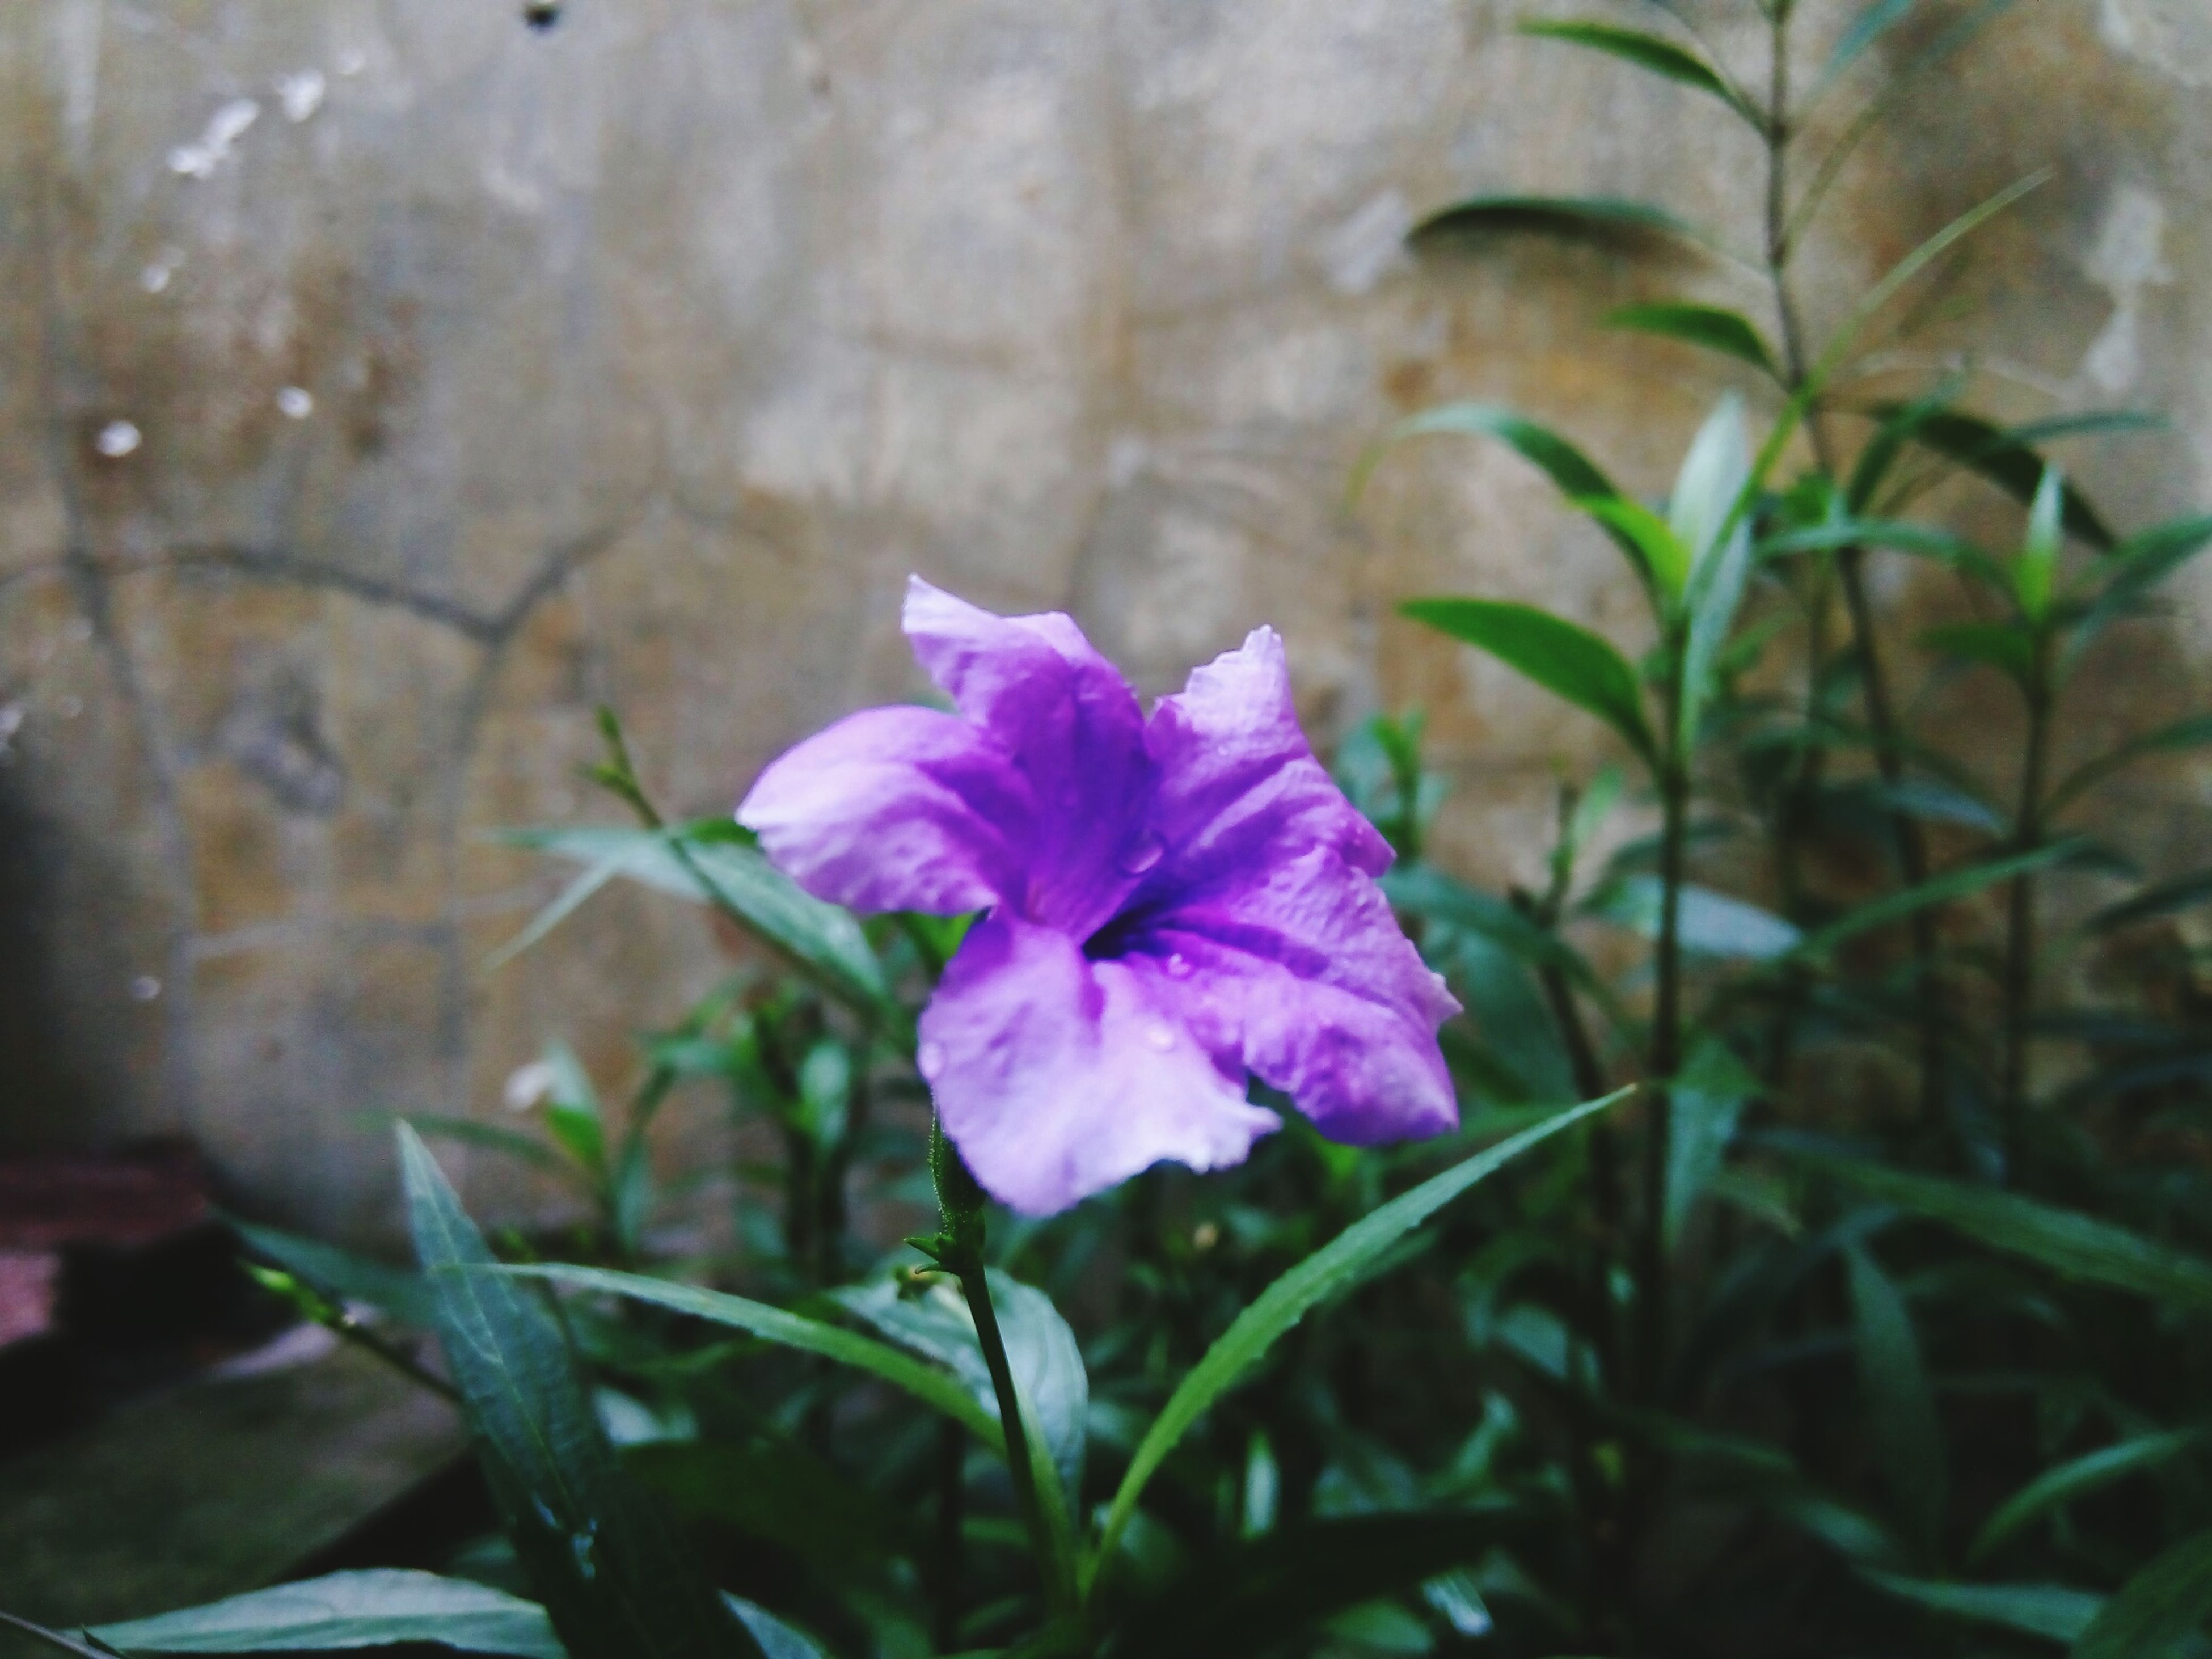 flower, petal, freshness, fragility, flower head, growth, beauty in nature, blooming, plant, close-up, purple, single flower, nature, pink color, focus on foreground, leaf, in bloom, stem, blossom, outdoors